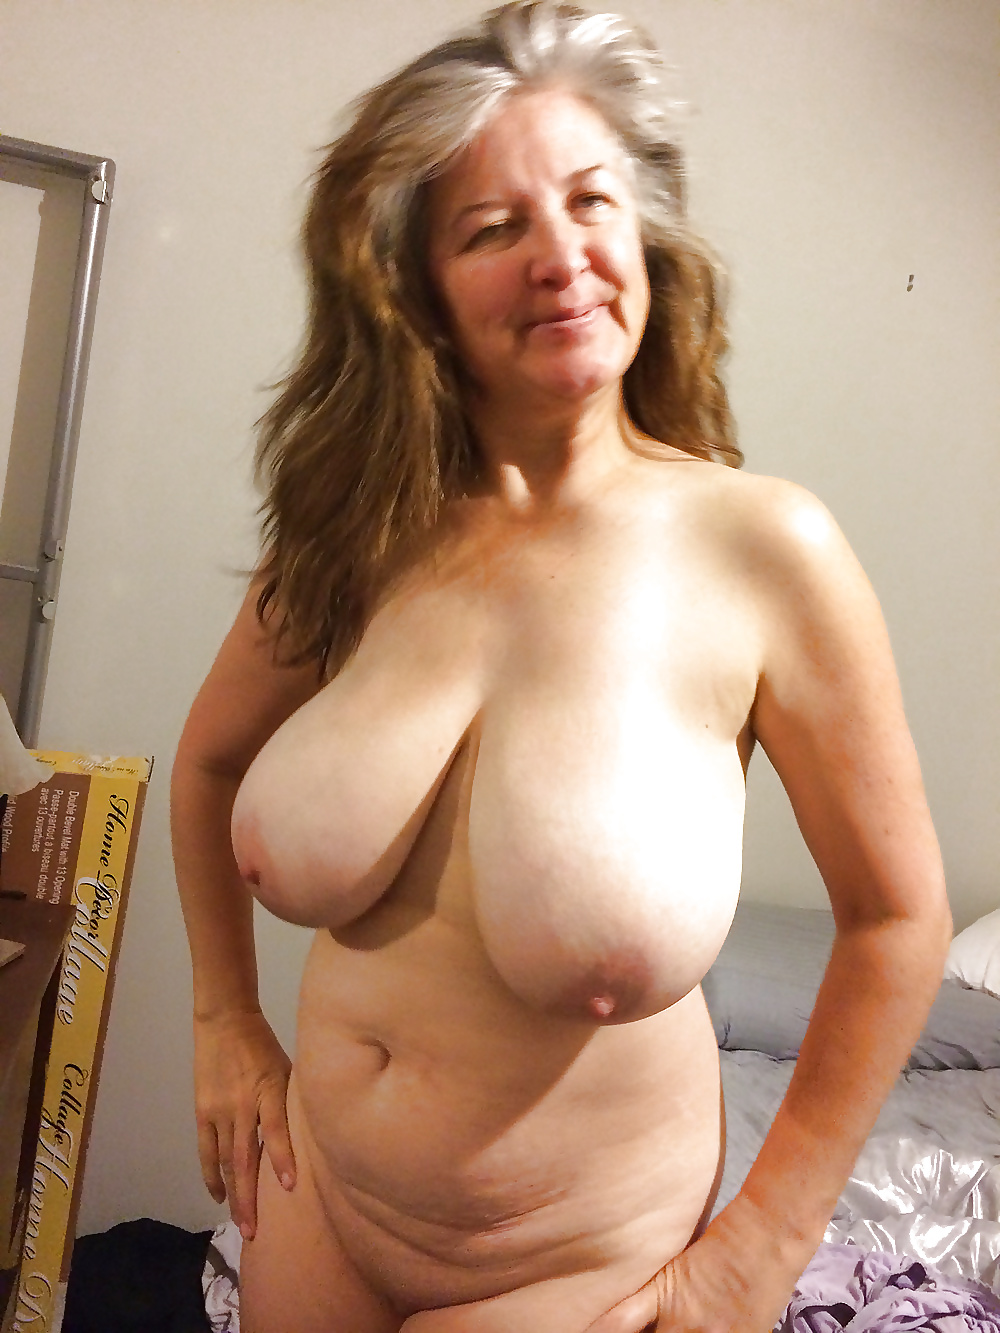 Old lady big tits, free lady sex young